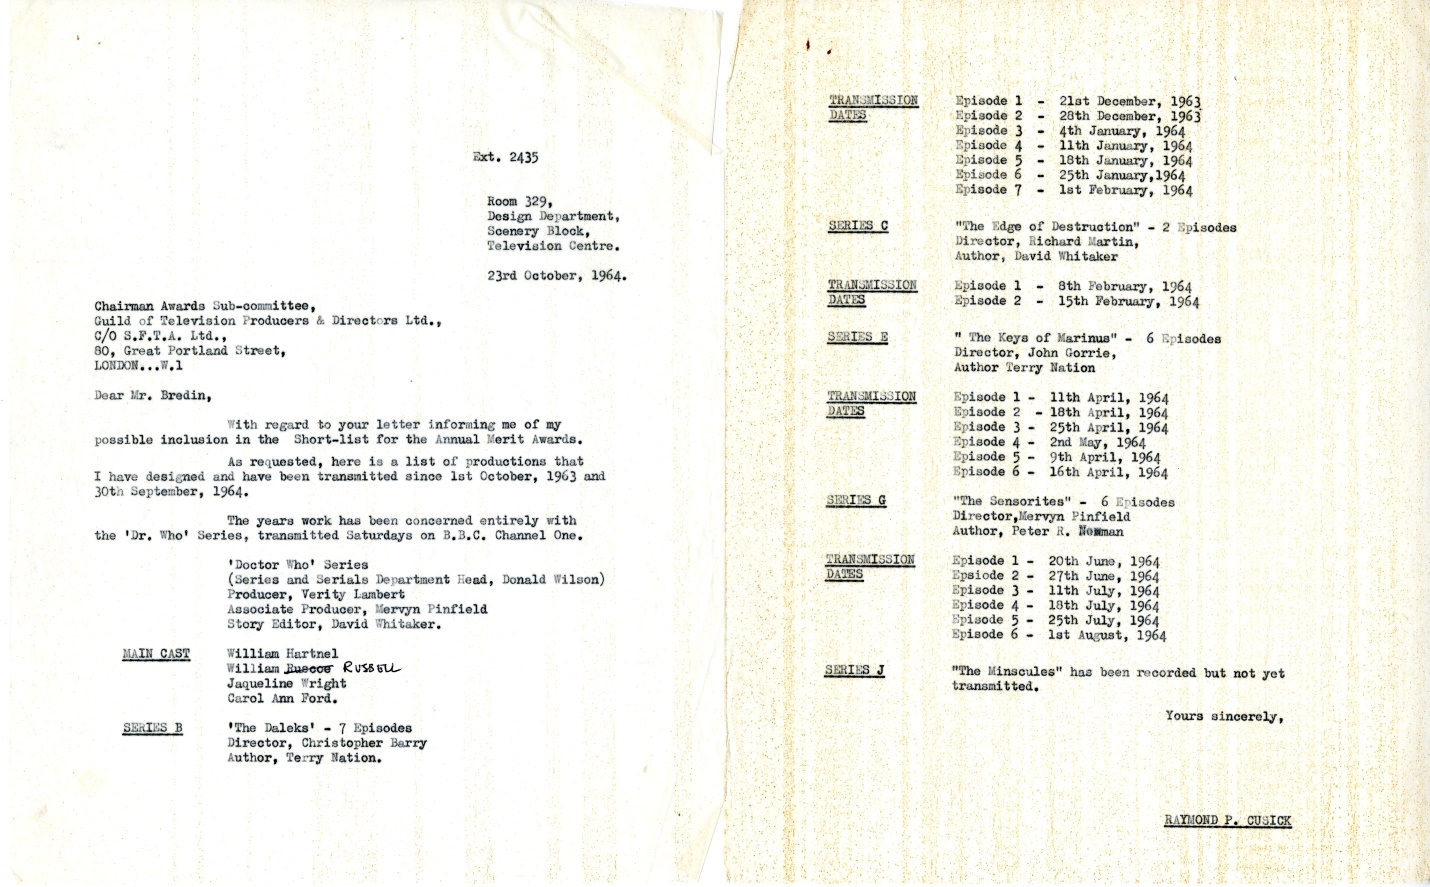 Letter from Raymond Cusick with nomination for an Internal Merit Award, dated October 23, 1964 (from the Raymond Cusick personal collection)